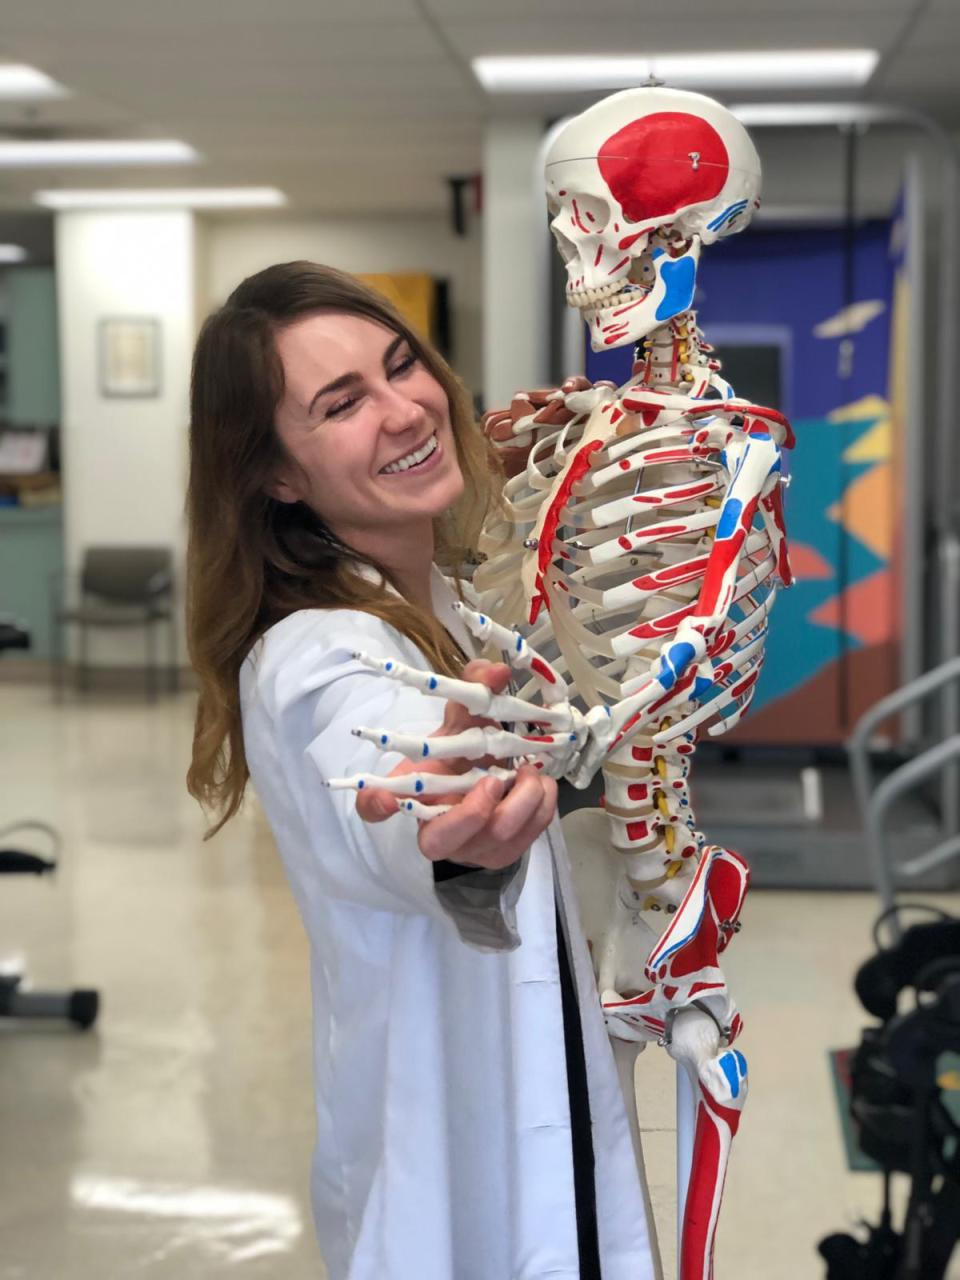 """""""When I first moved out to the Bay Area for medical school, I was very excited,"""" said Anita Lowe Taylor. """"It's a good program. I really appreciate the people I work around. But it really made almost no financial sense."""""""